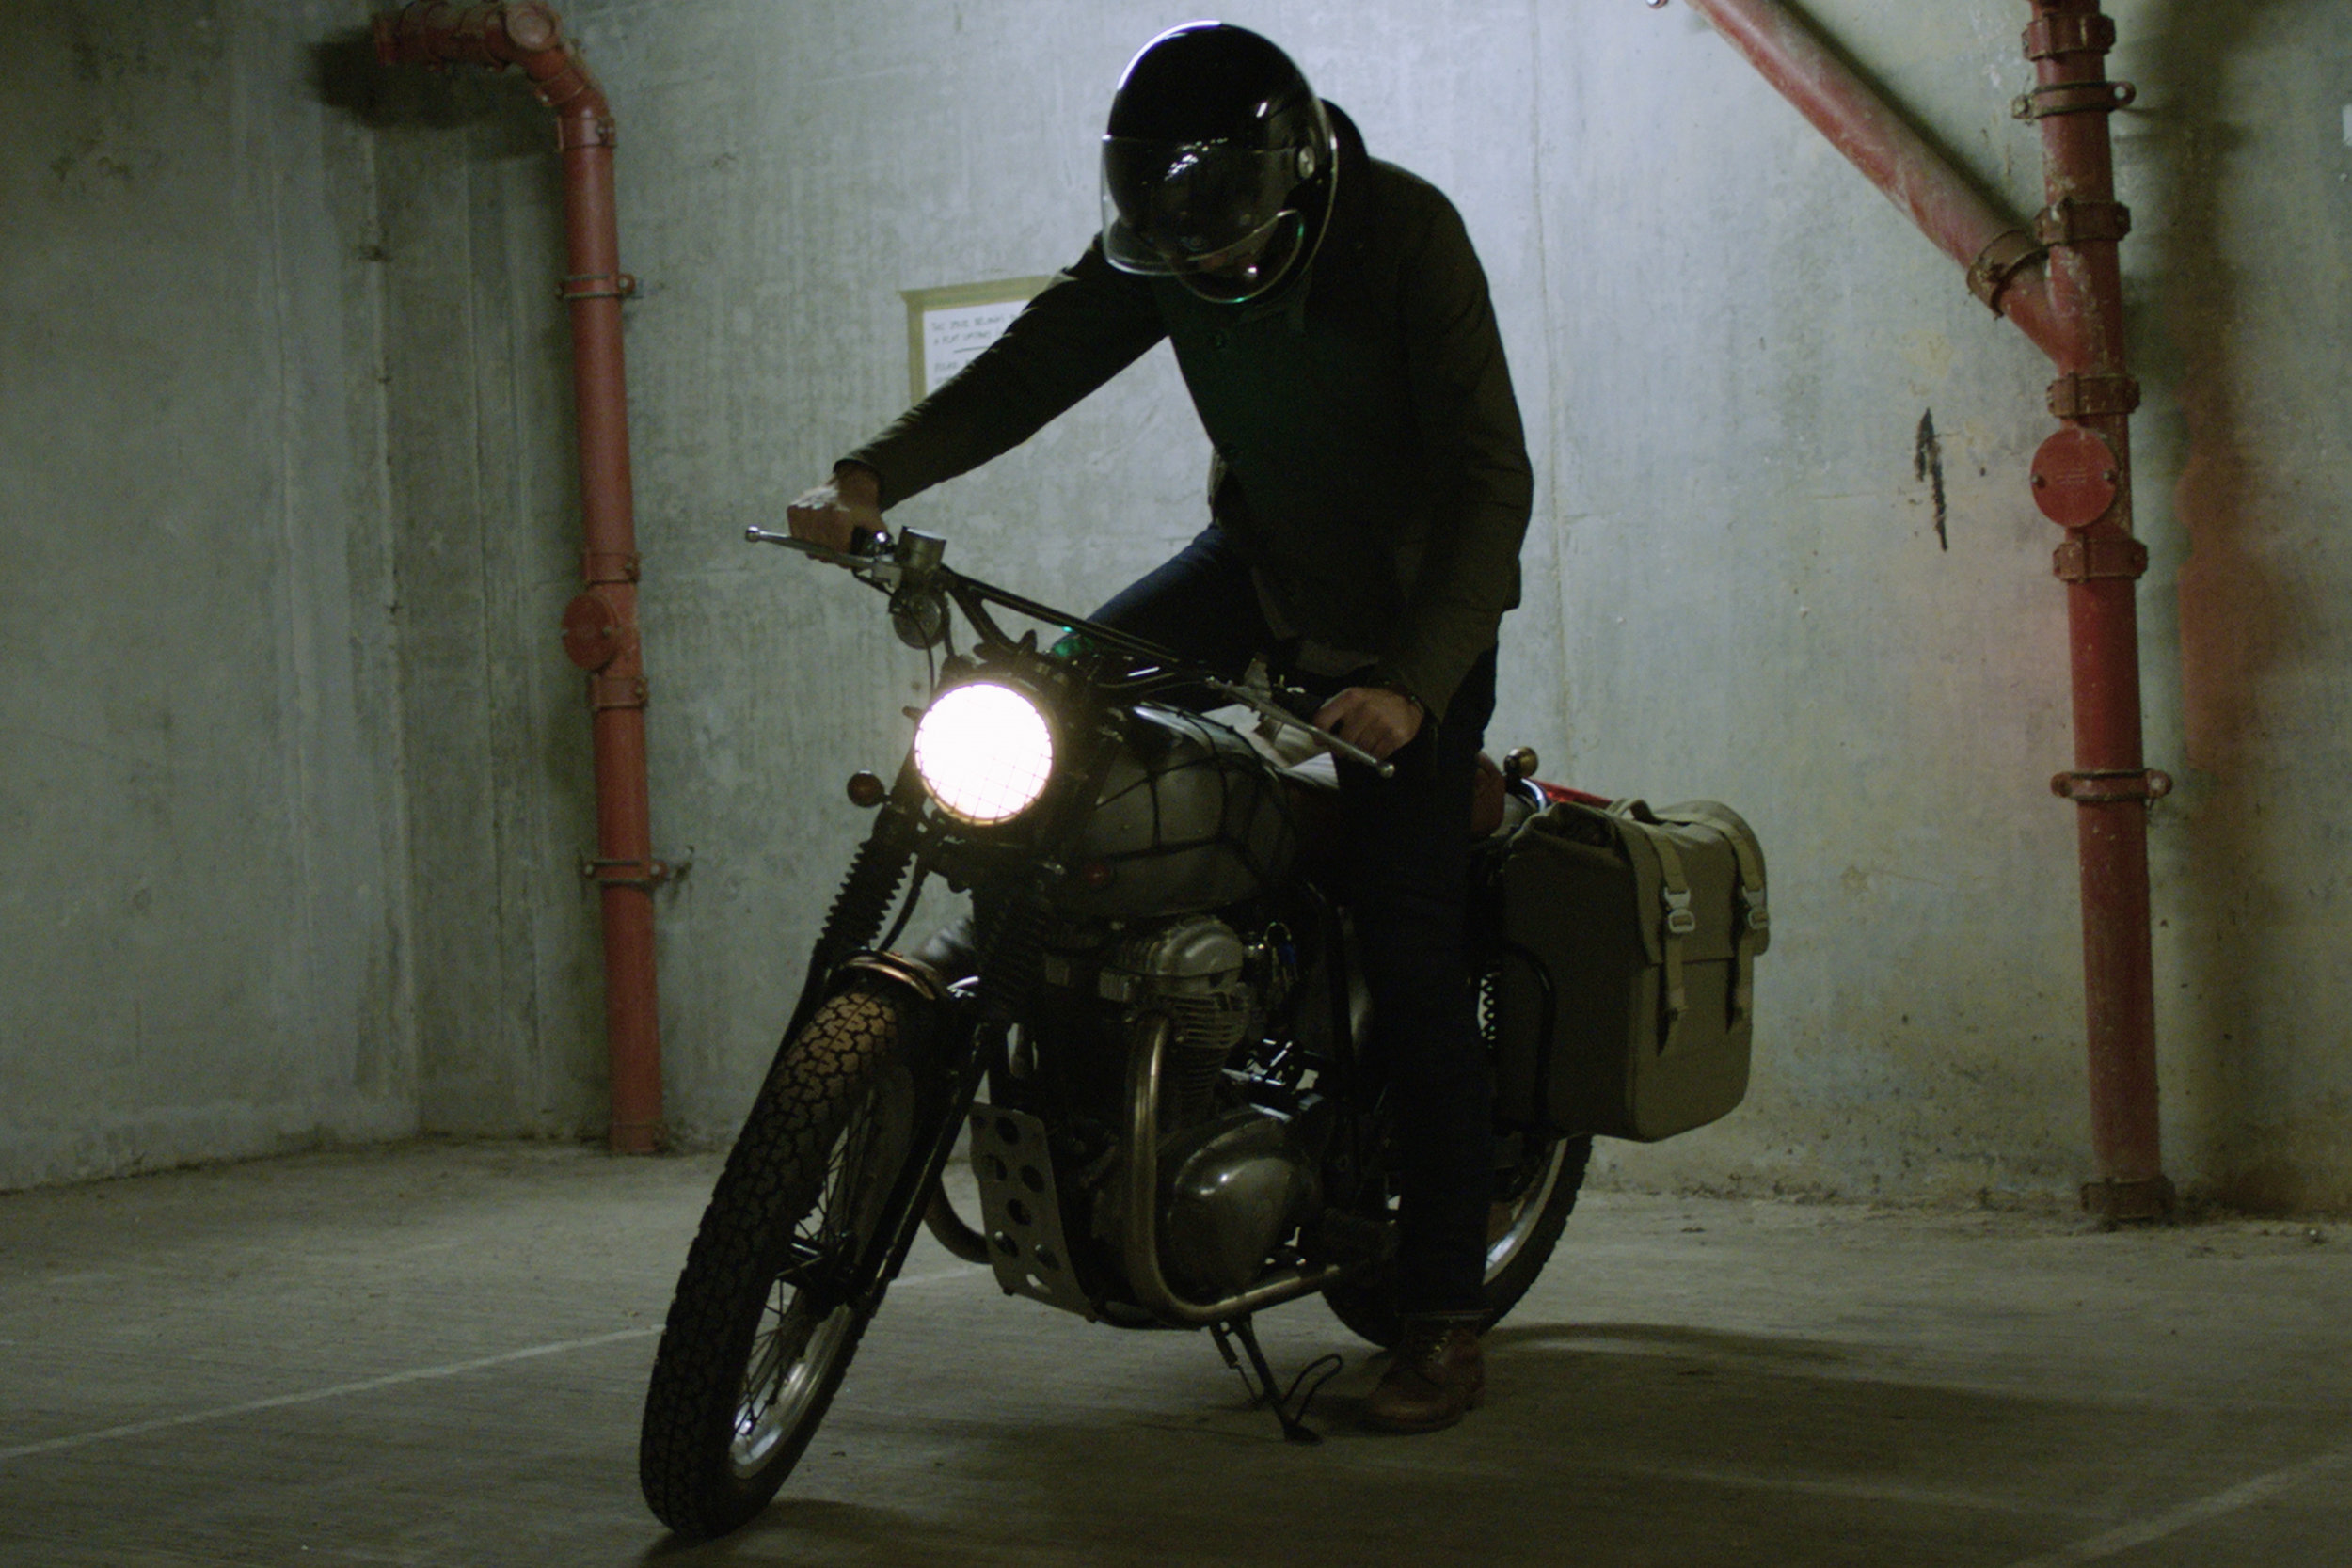 ashley-watson_whats-the-best-summer-and-winter-motorcycle-clothing-9.jpg